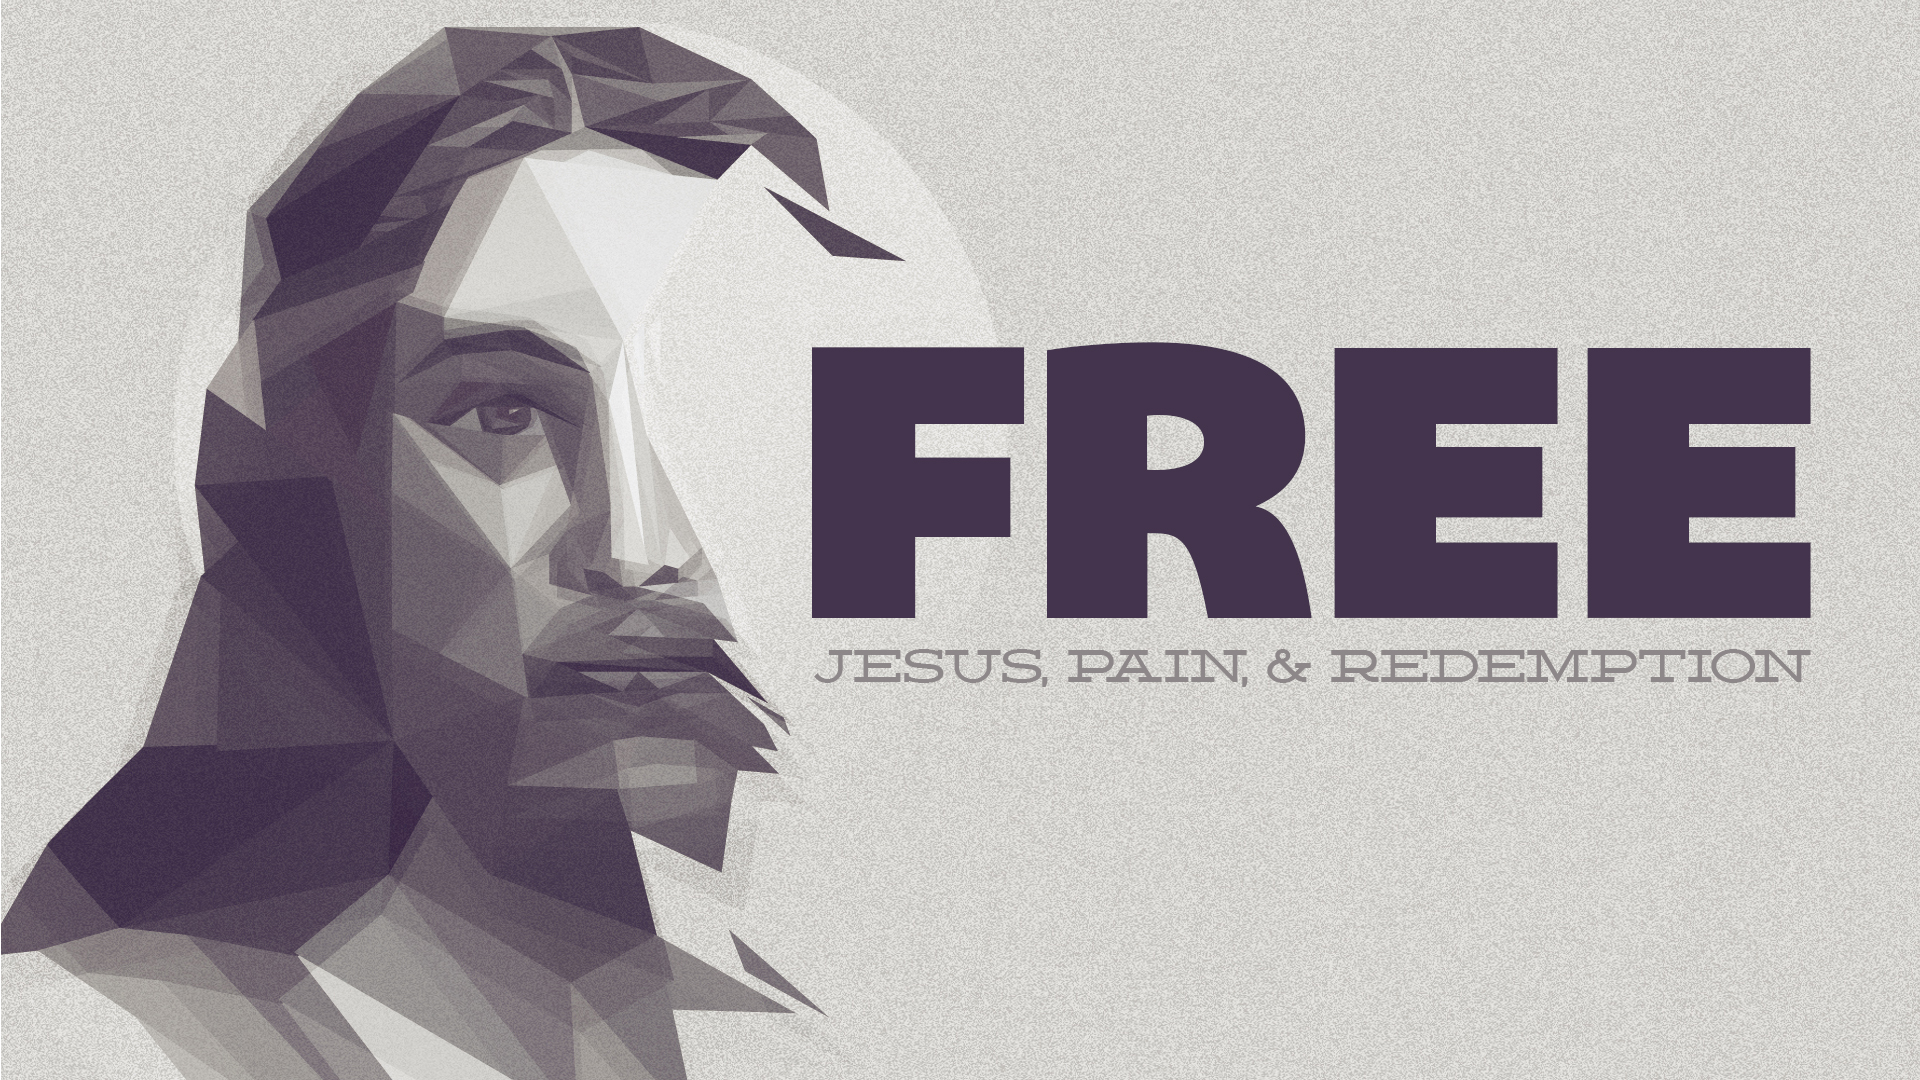 Free: Jesus, Pain, & Redemption